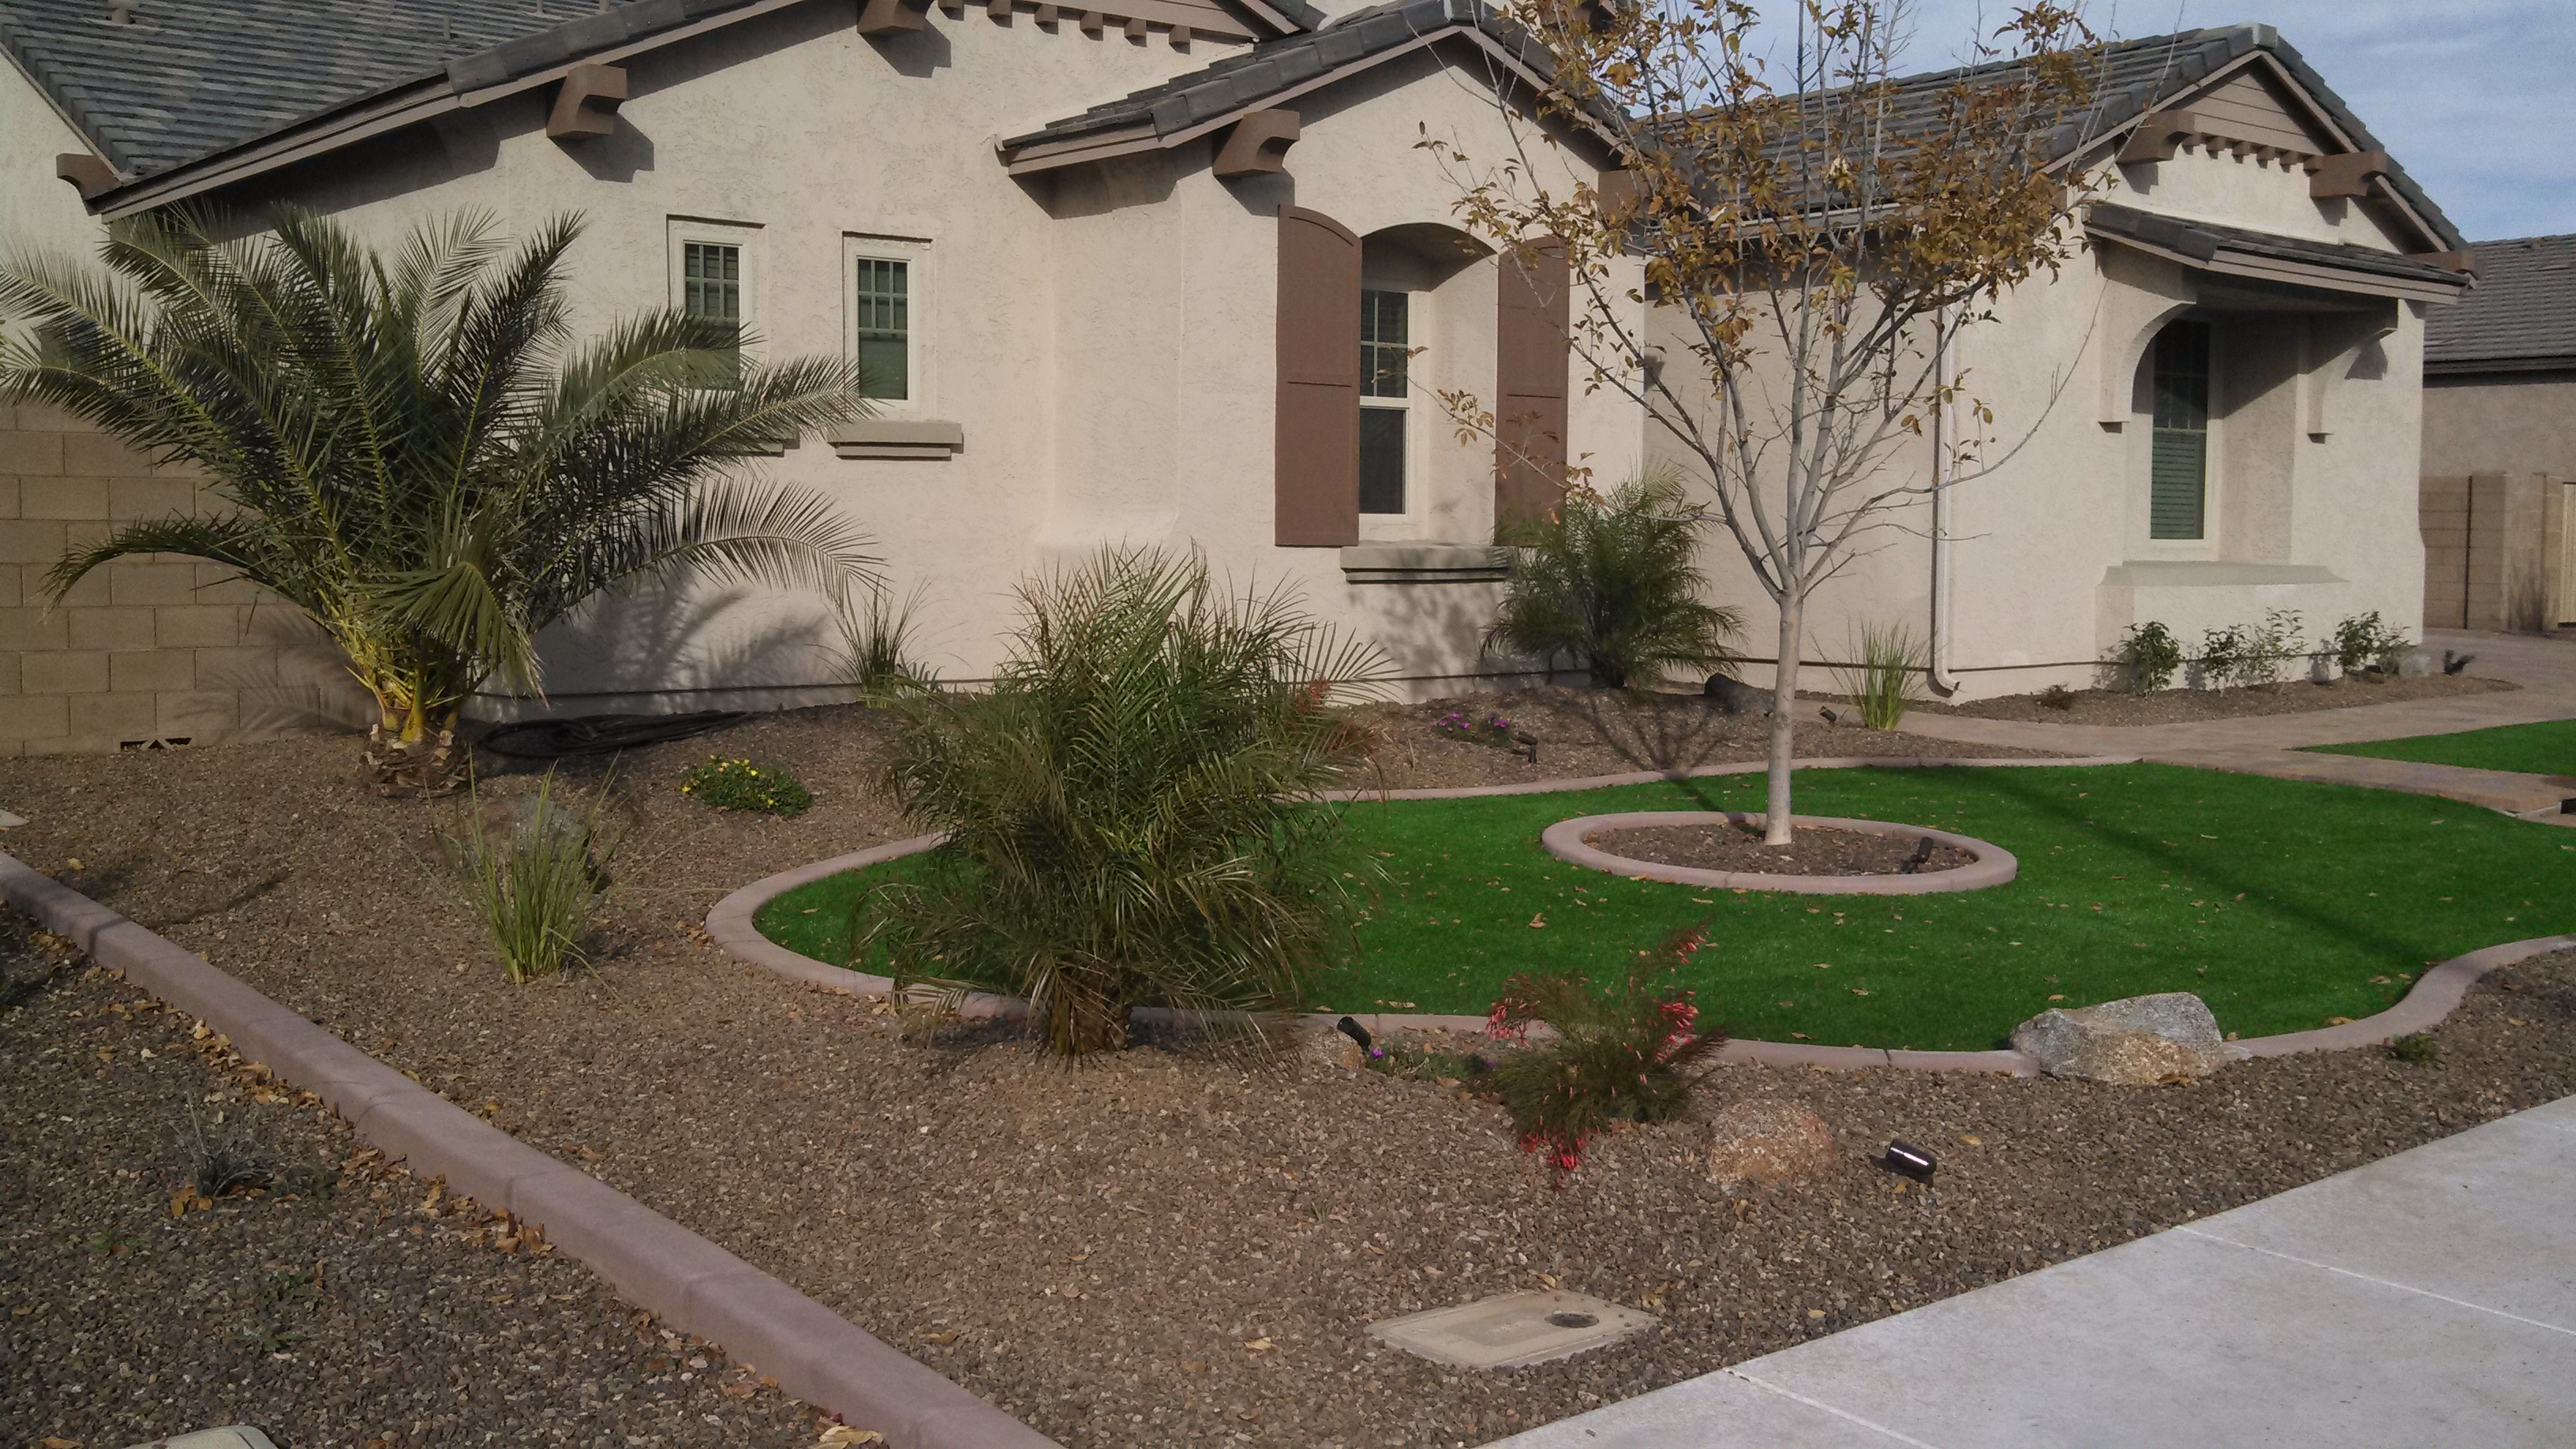 Landscape design archives arizona living landscape design for How much does it cost to landscape a front yard